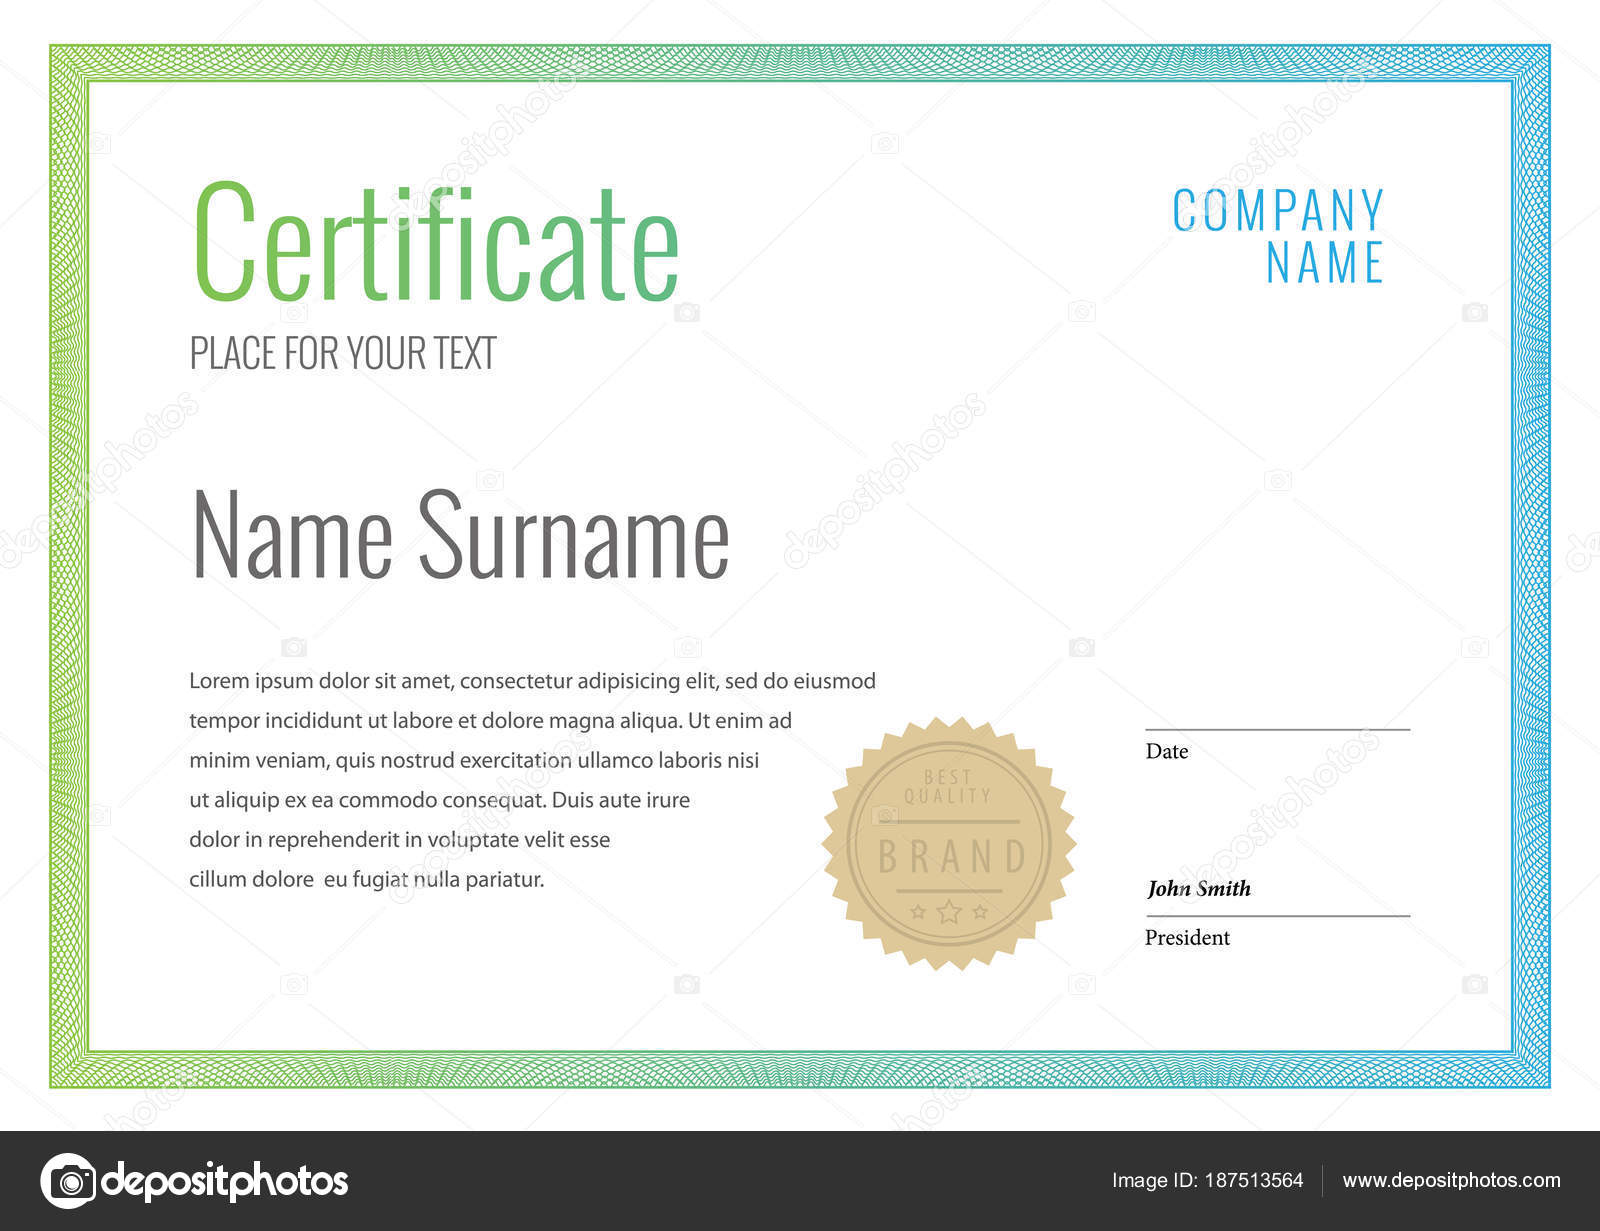 Certificate template diploma currency border award background gift certificate template diploma currency border award background gift voucher vector stock vector yelopaper Gallery